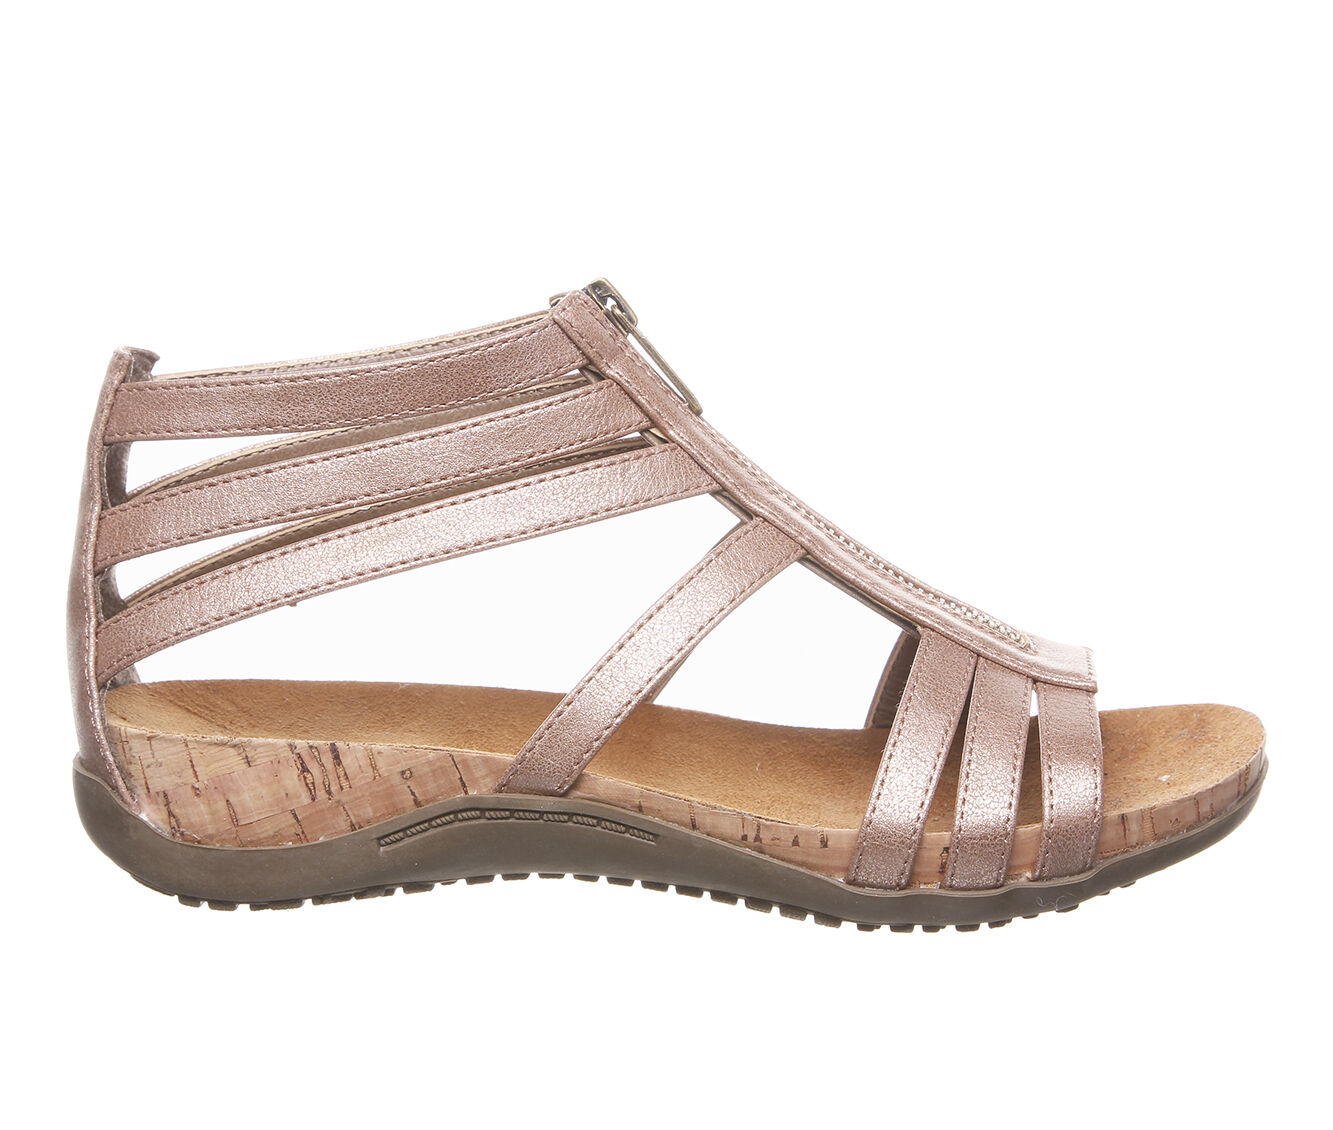 Women's Bearpaw Layla Footbed Sandals Rose Gold